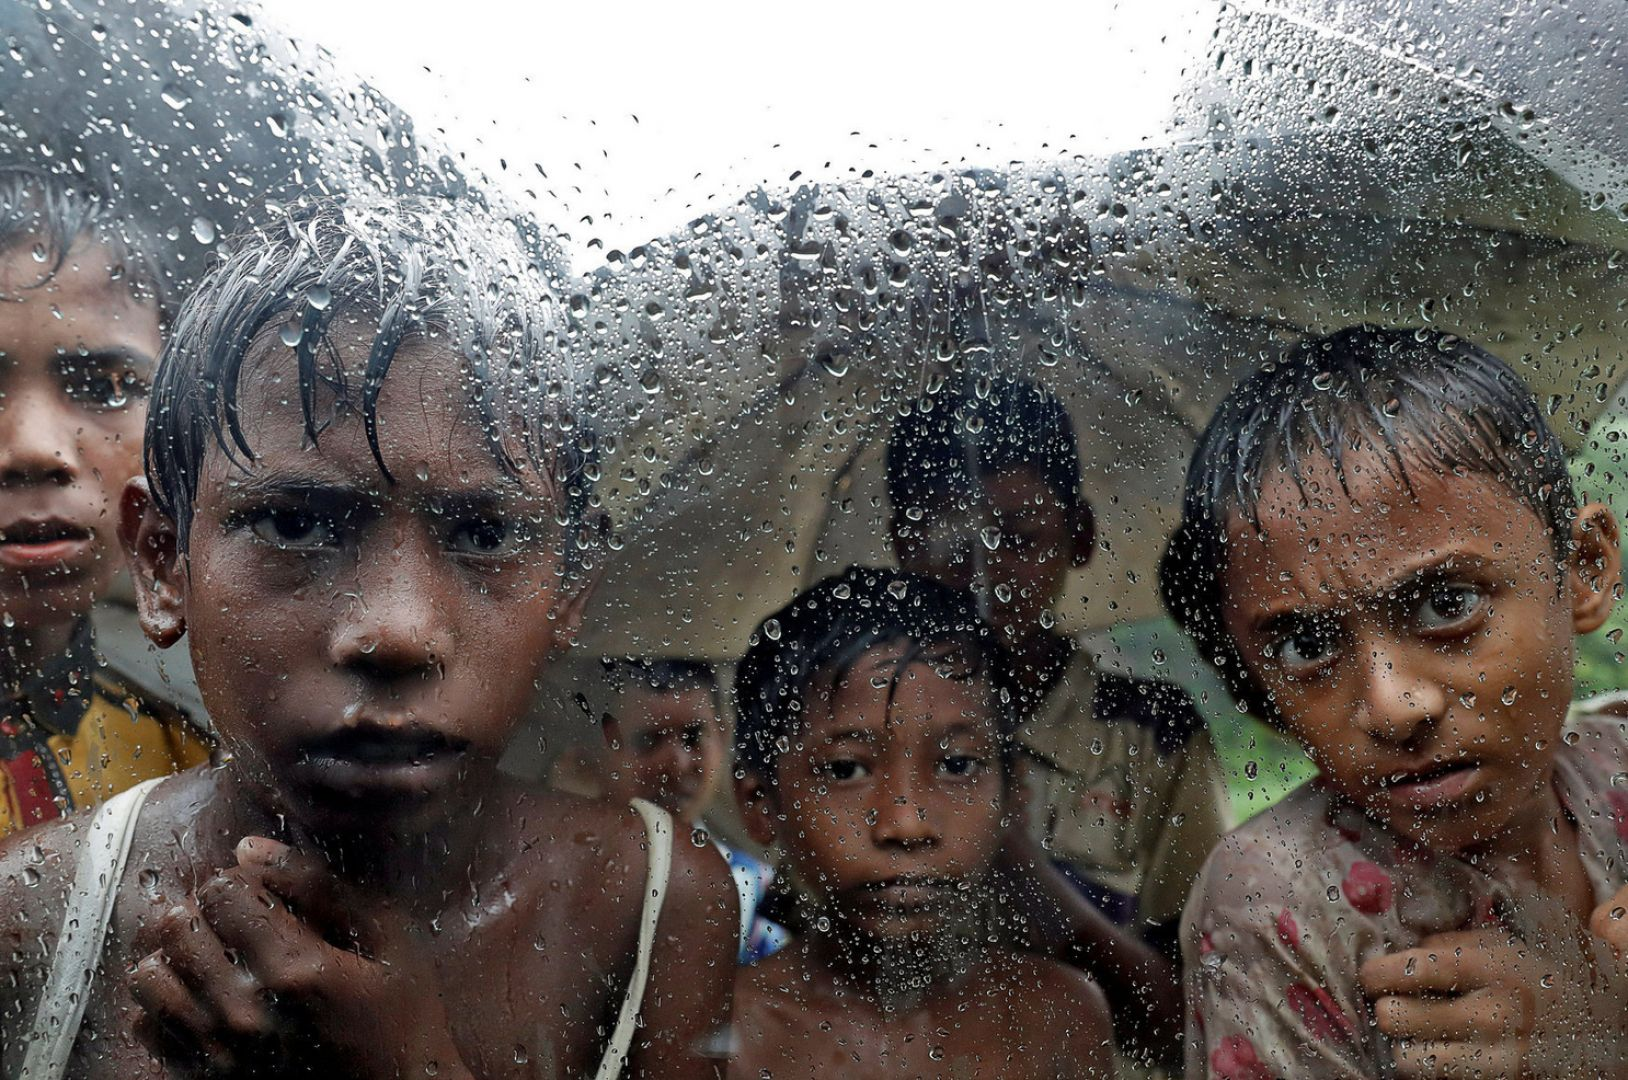 Rohingya refugee children pictured in a camp in cox's Bazar Bangladesh. Reuters/Cathal McNaughton